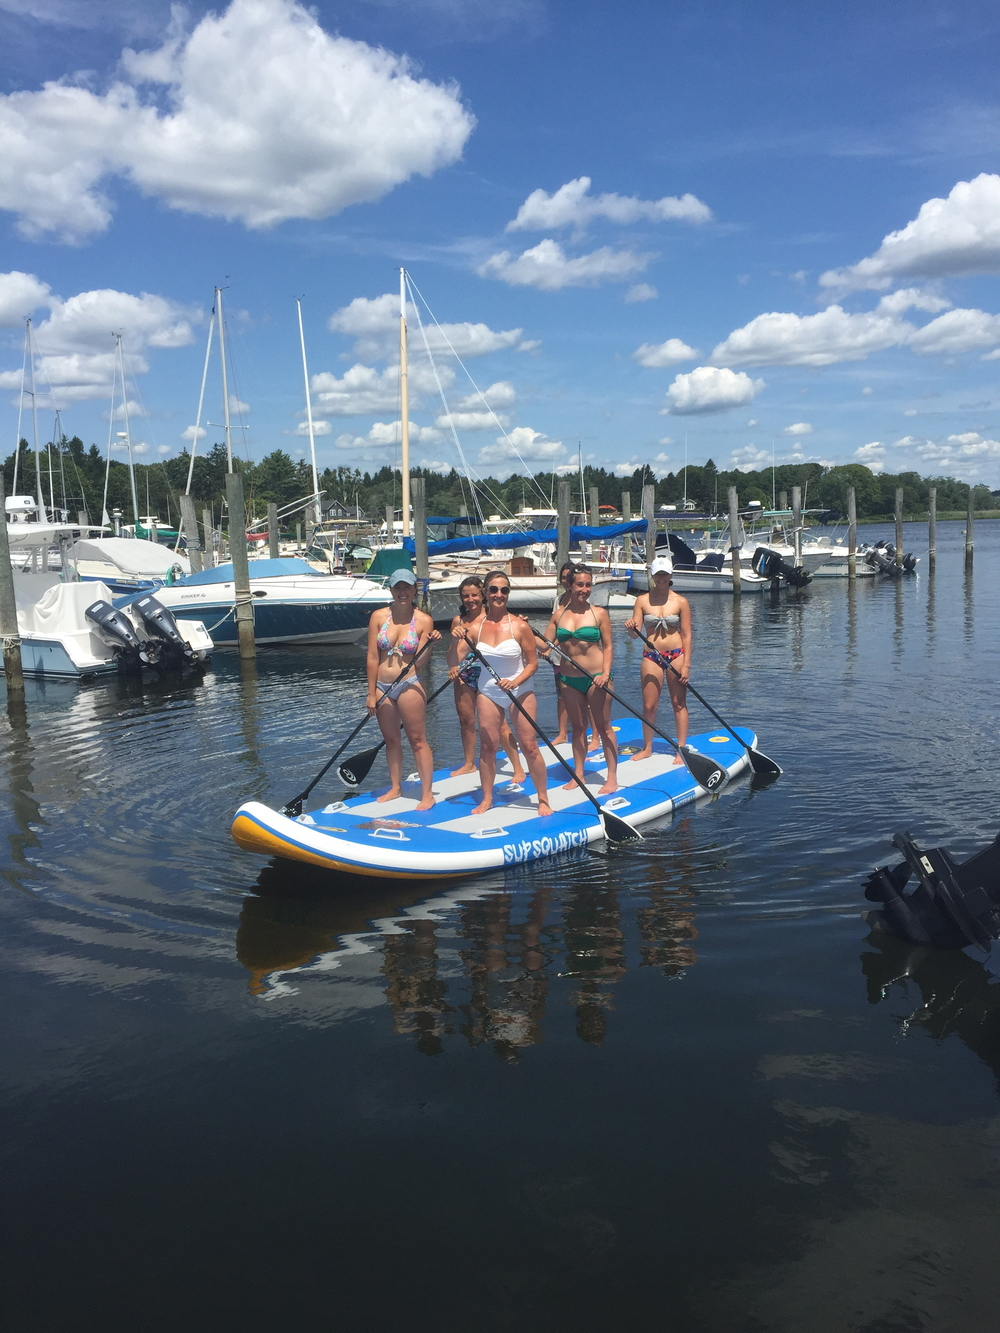 Surf Amp Paddle Boards Rentals And Lessons Paddle Surf Ri